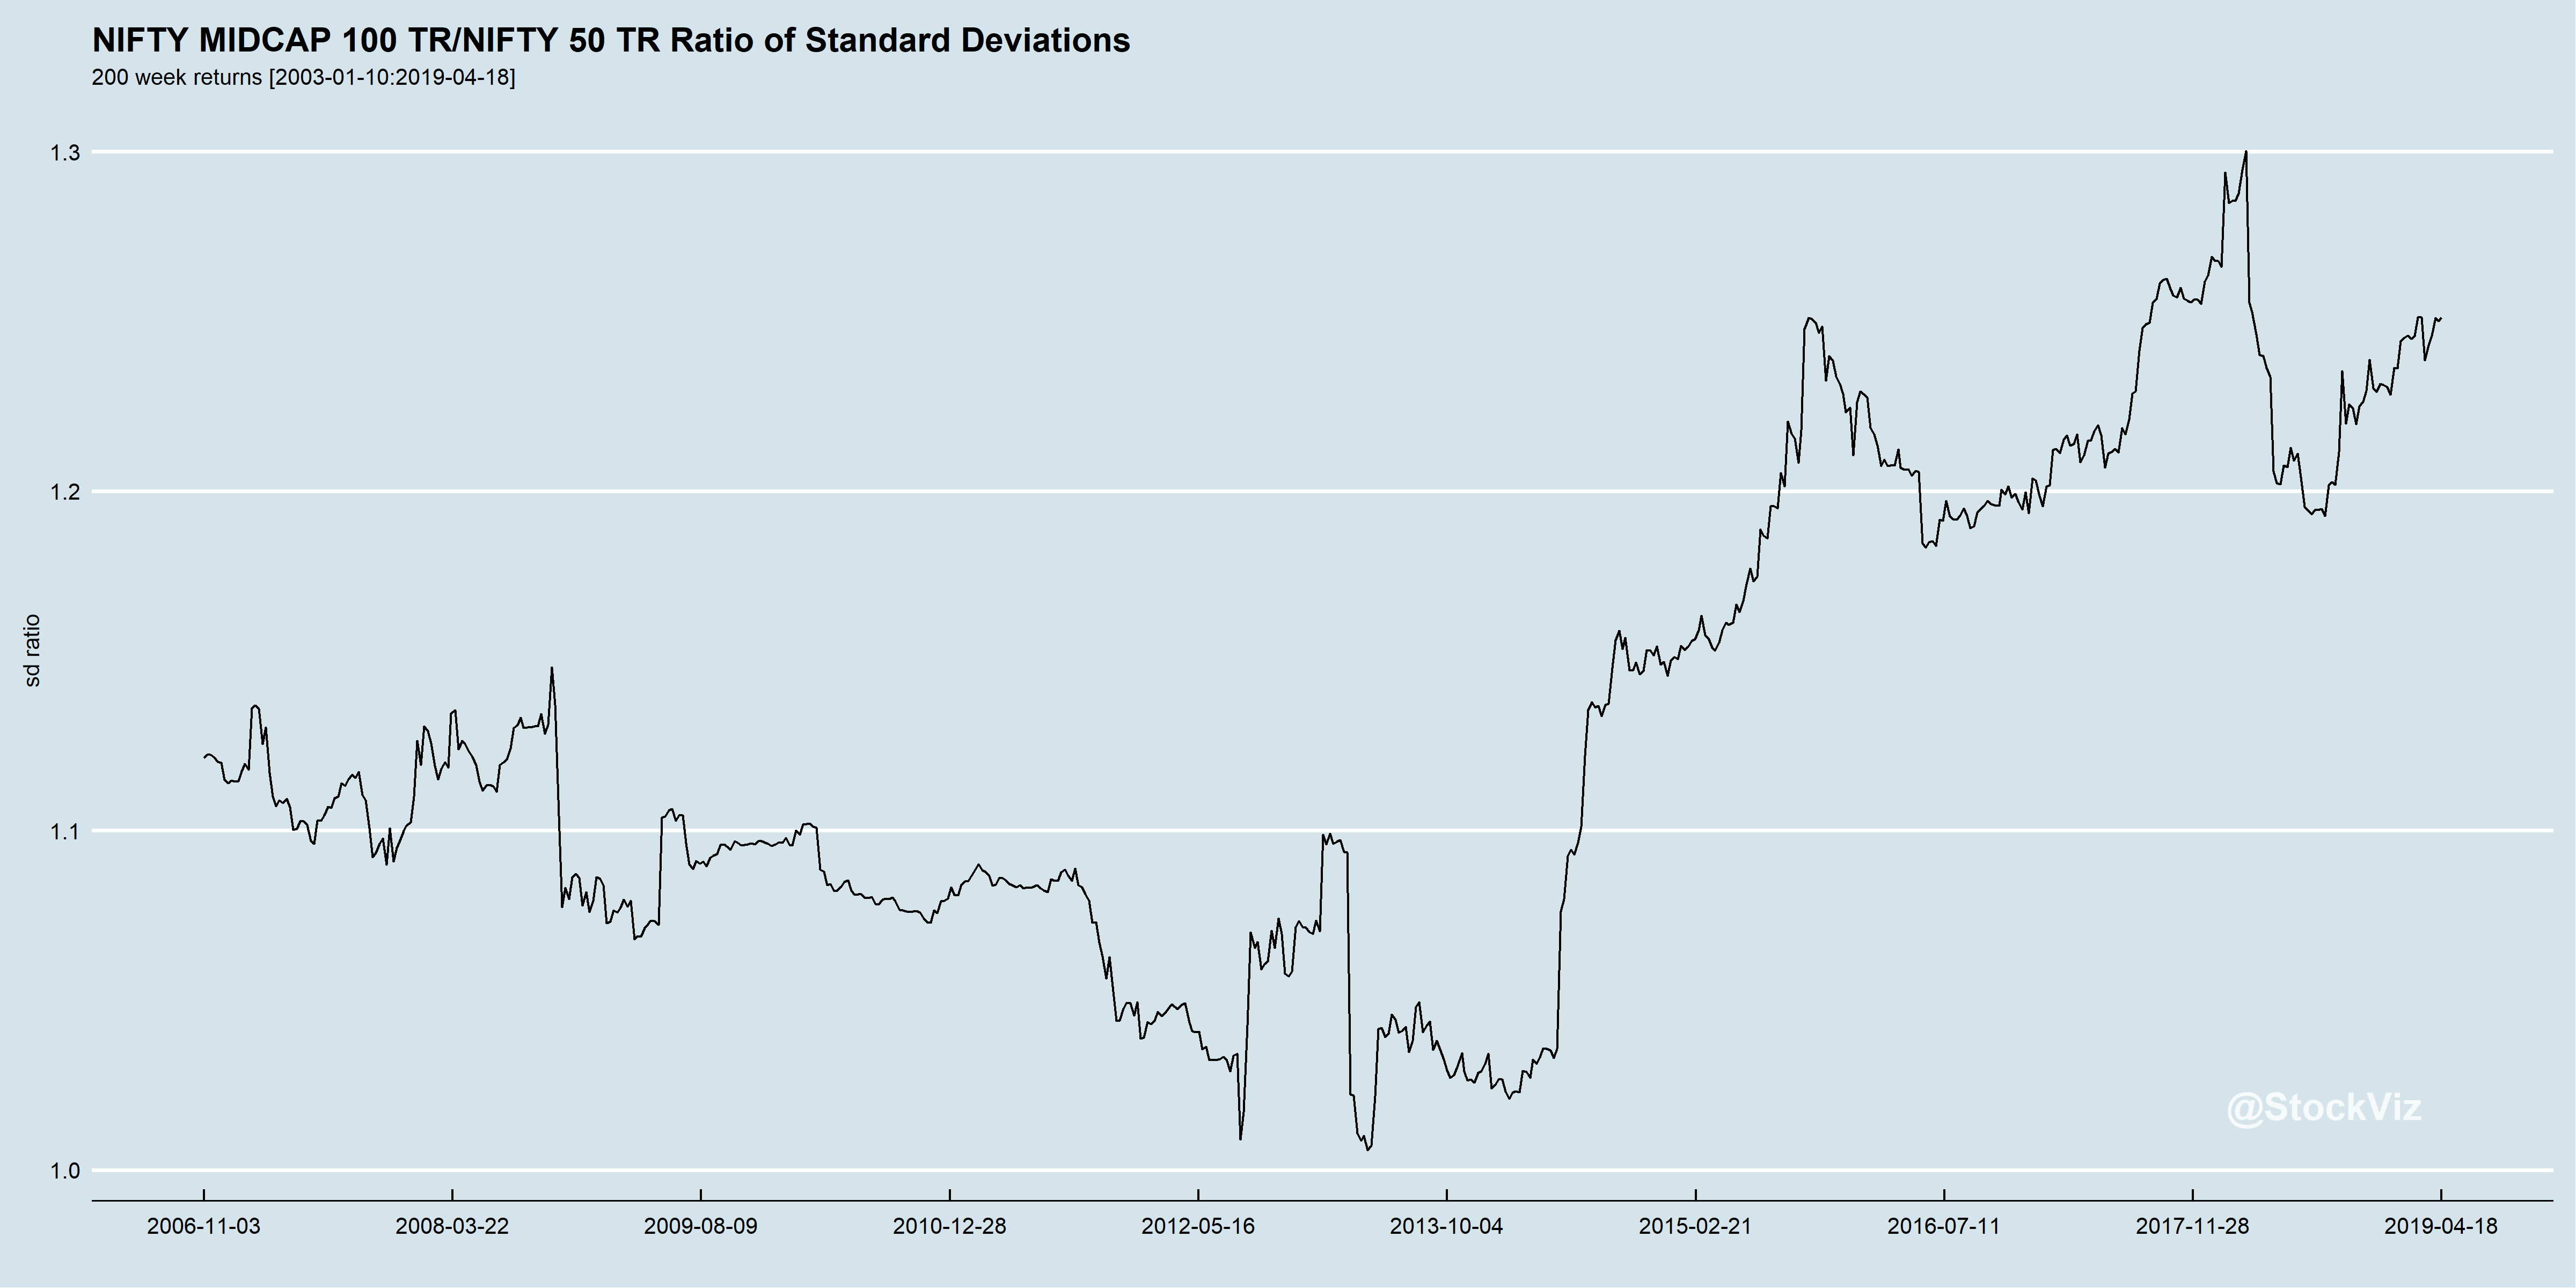 ratio of standard deviations